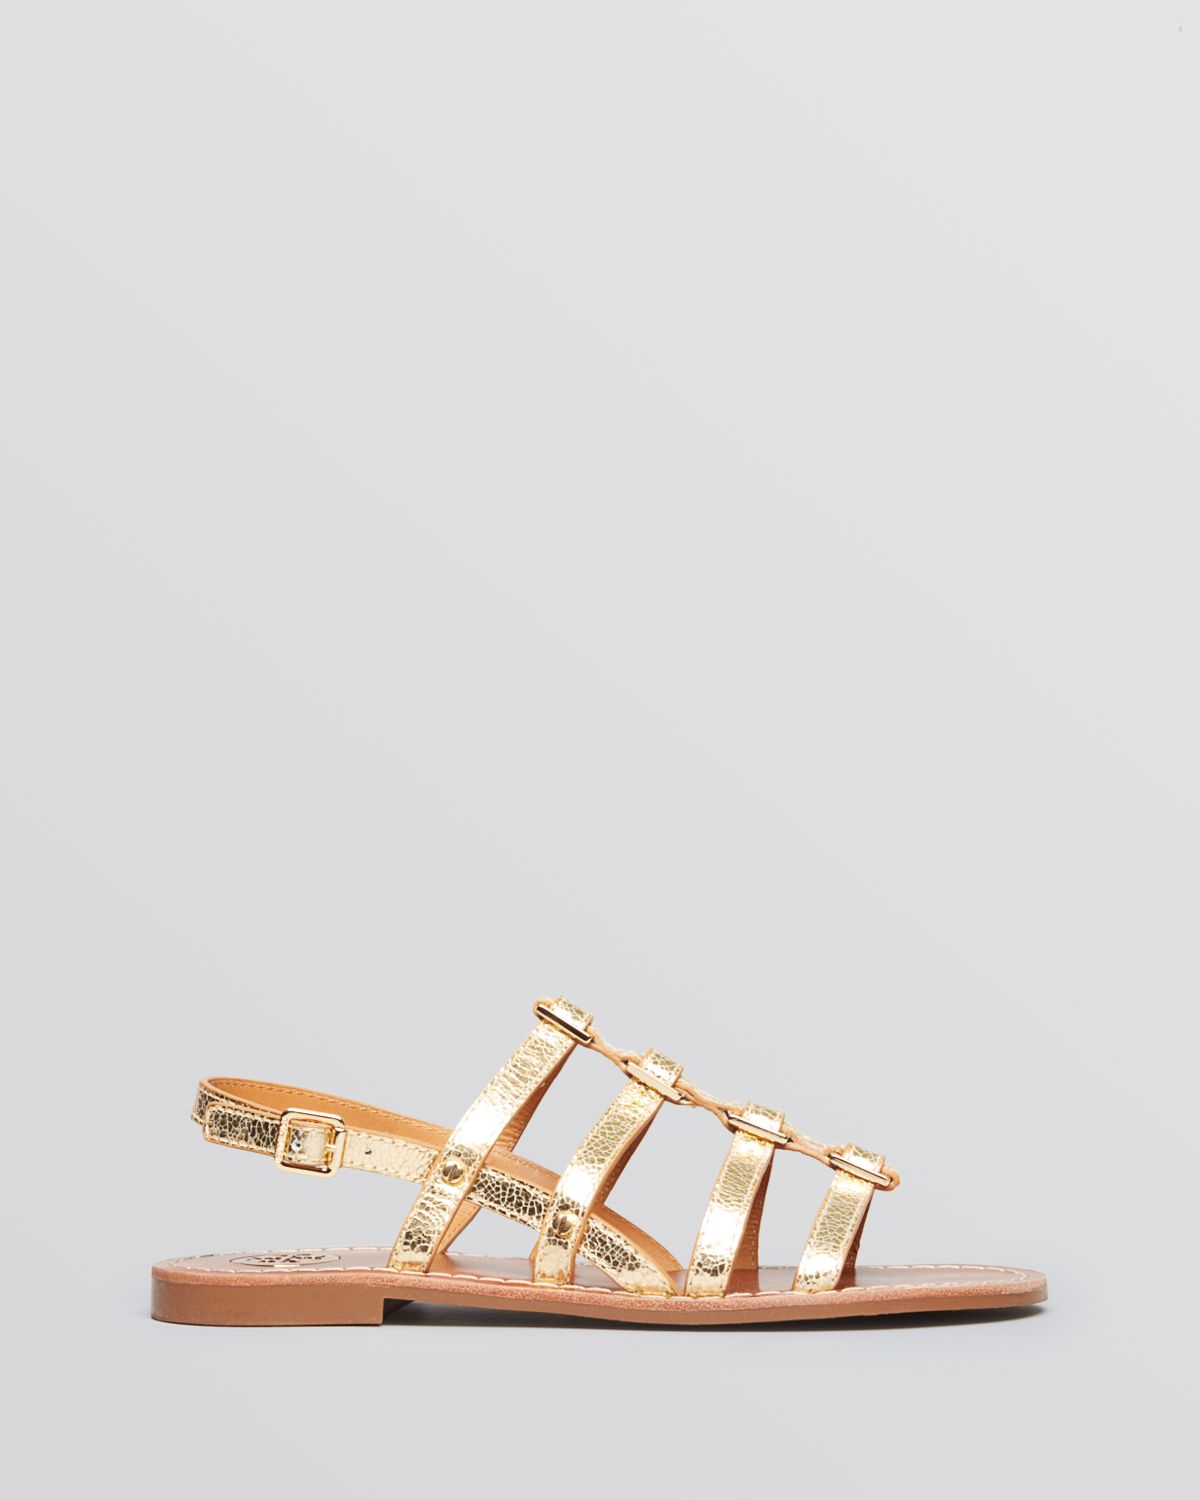 83a852eab Lyst - Tory Burch Flat Gladiator Sandals Reggie in Metallic